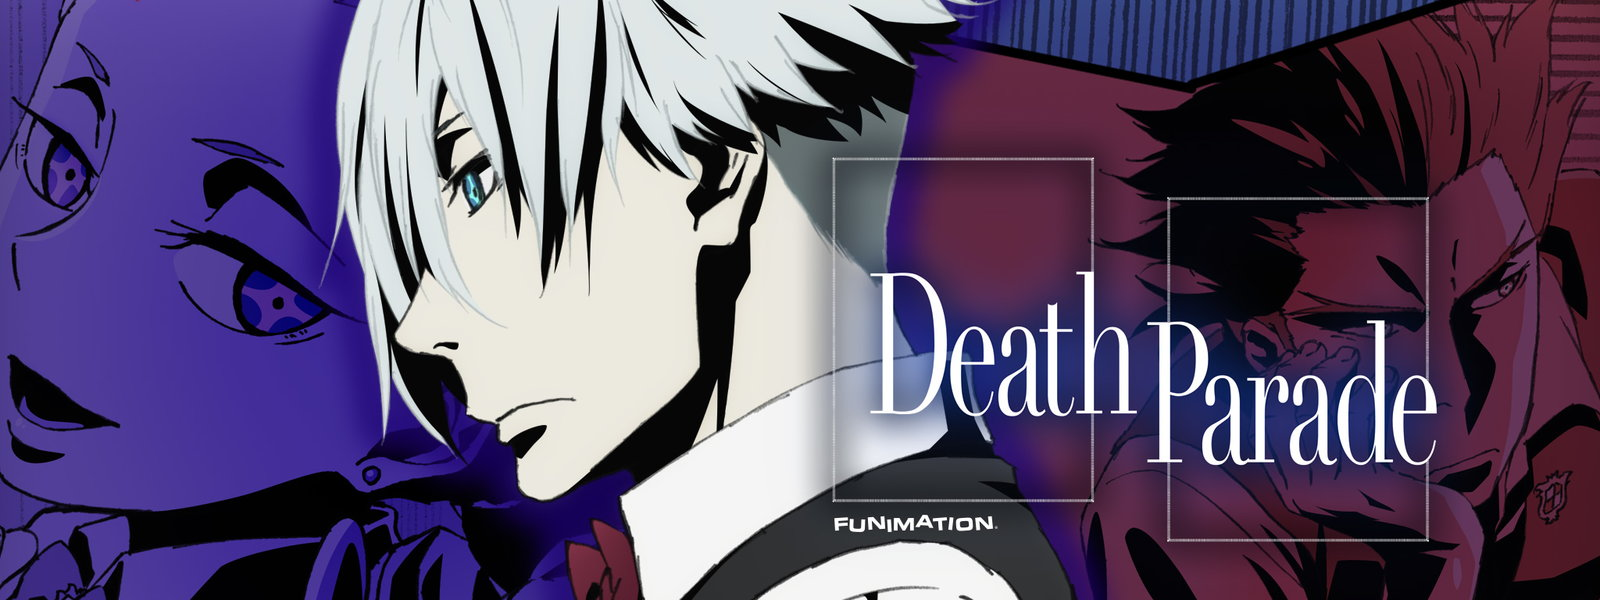 how to start watching anime, death parade